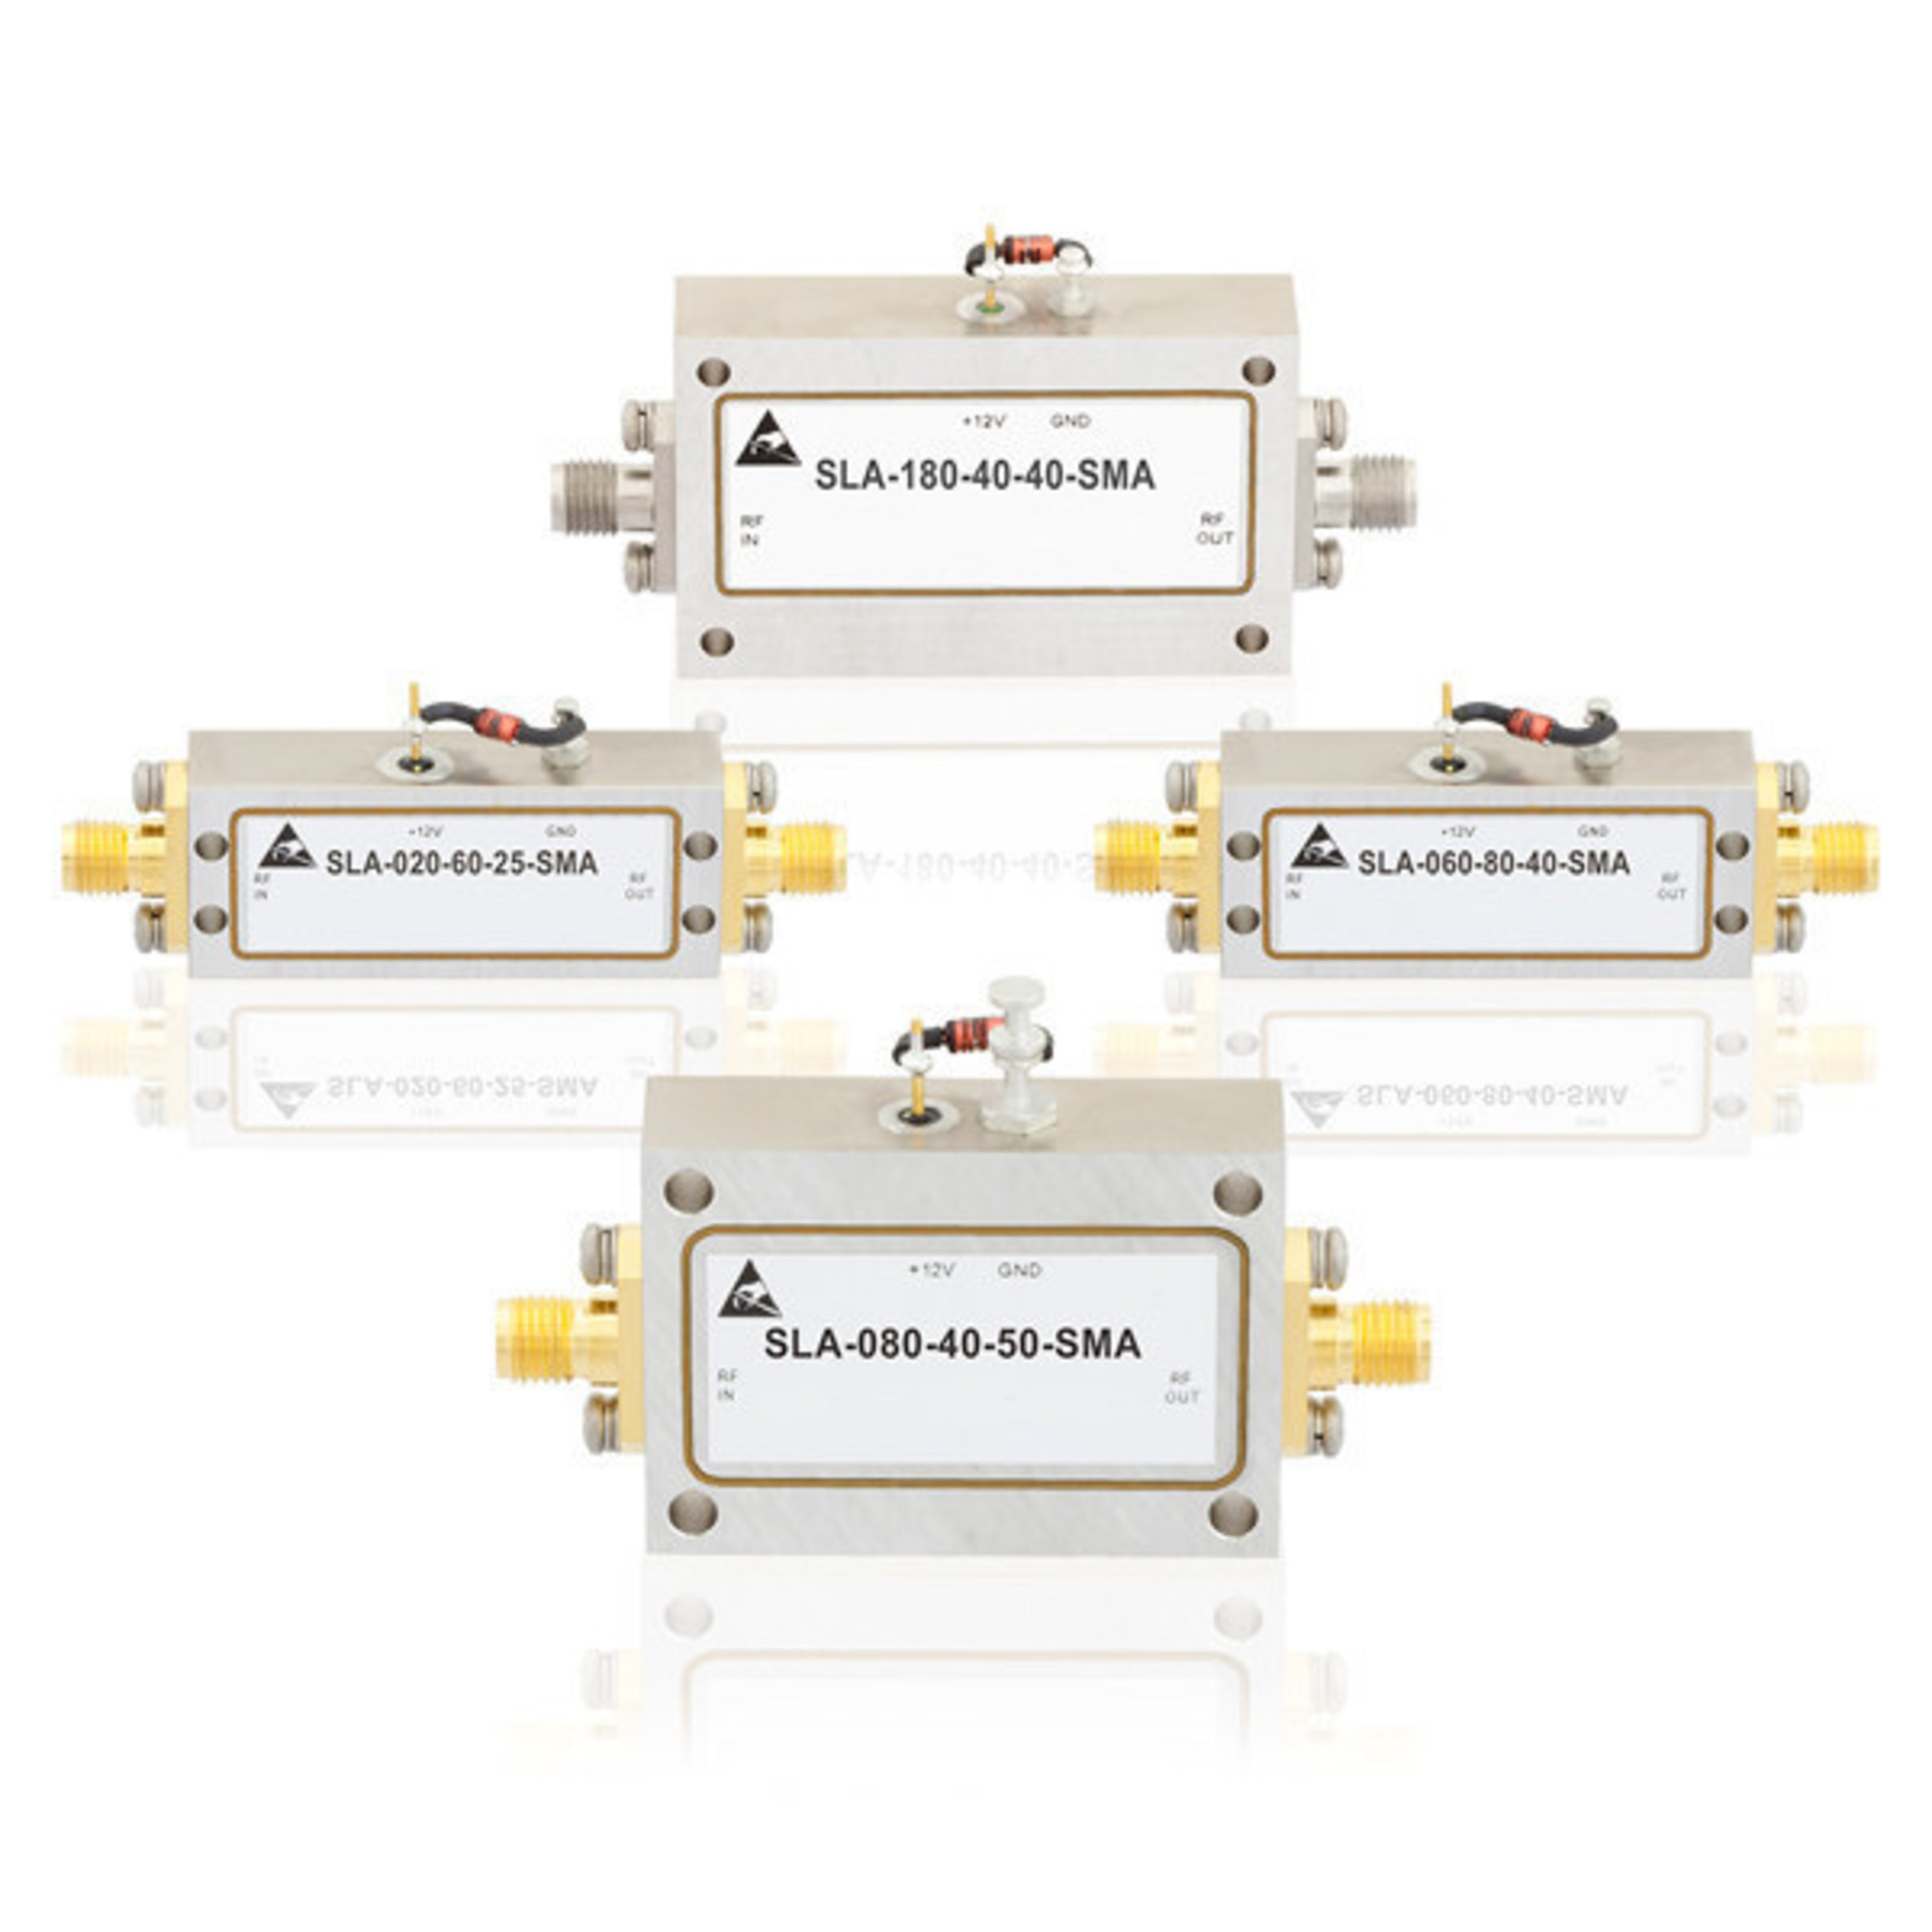 New Limiting Amplifiers from Fairview Microwave Protect Receivers from Excessive Power and